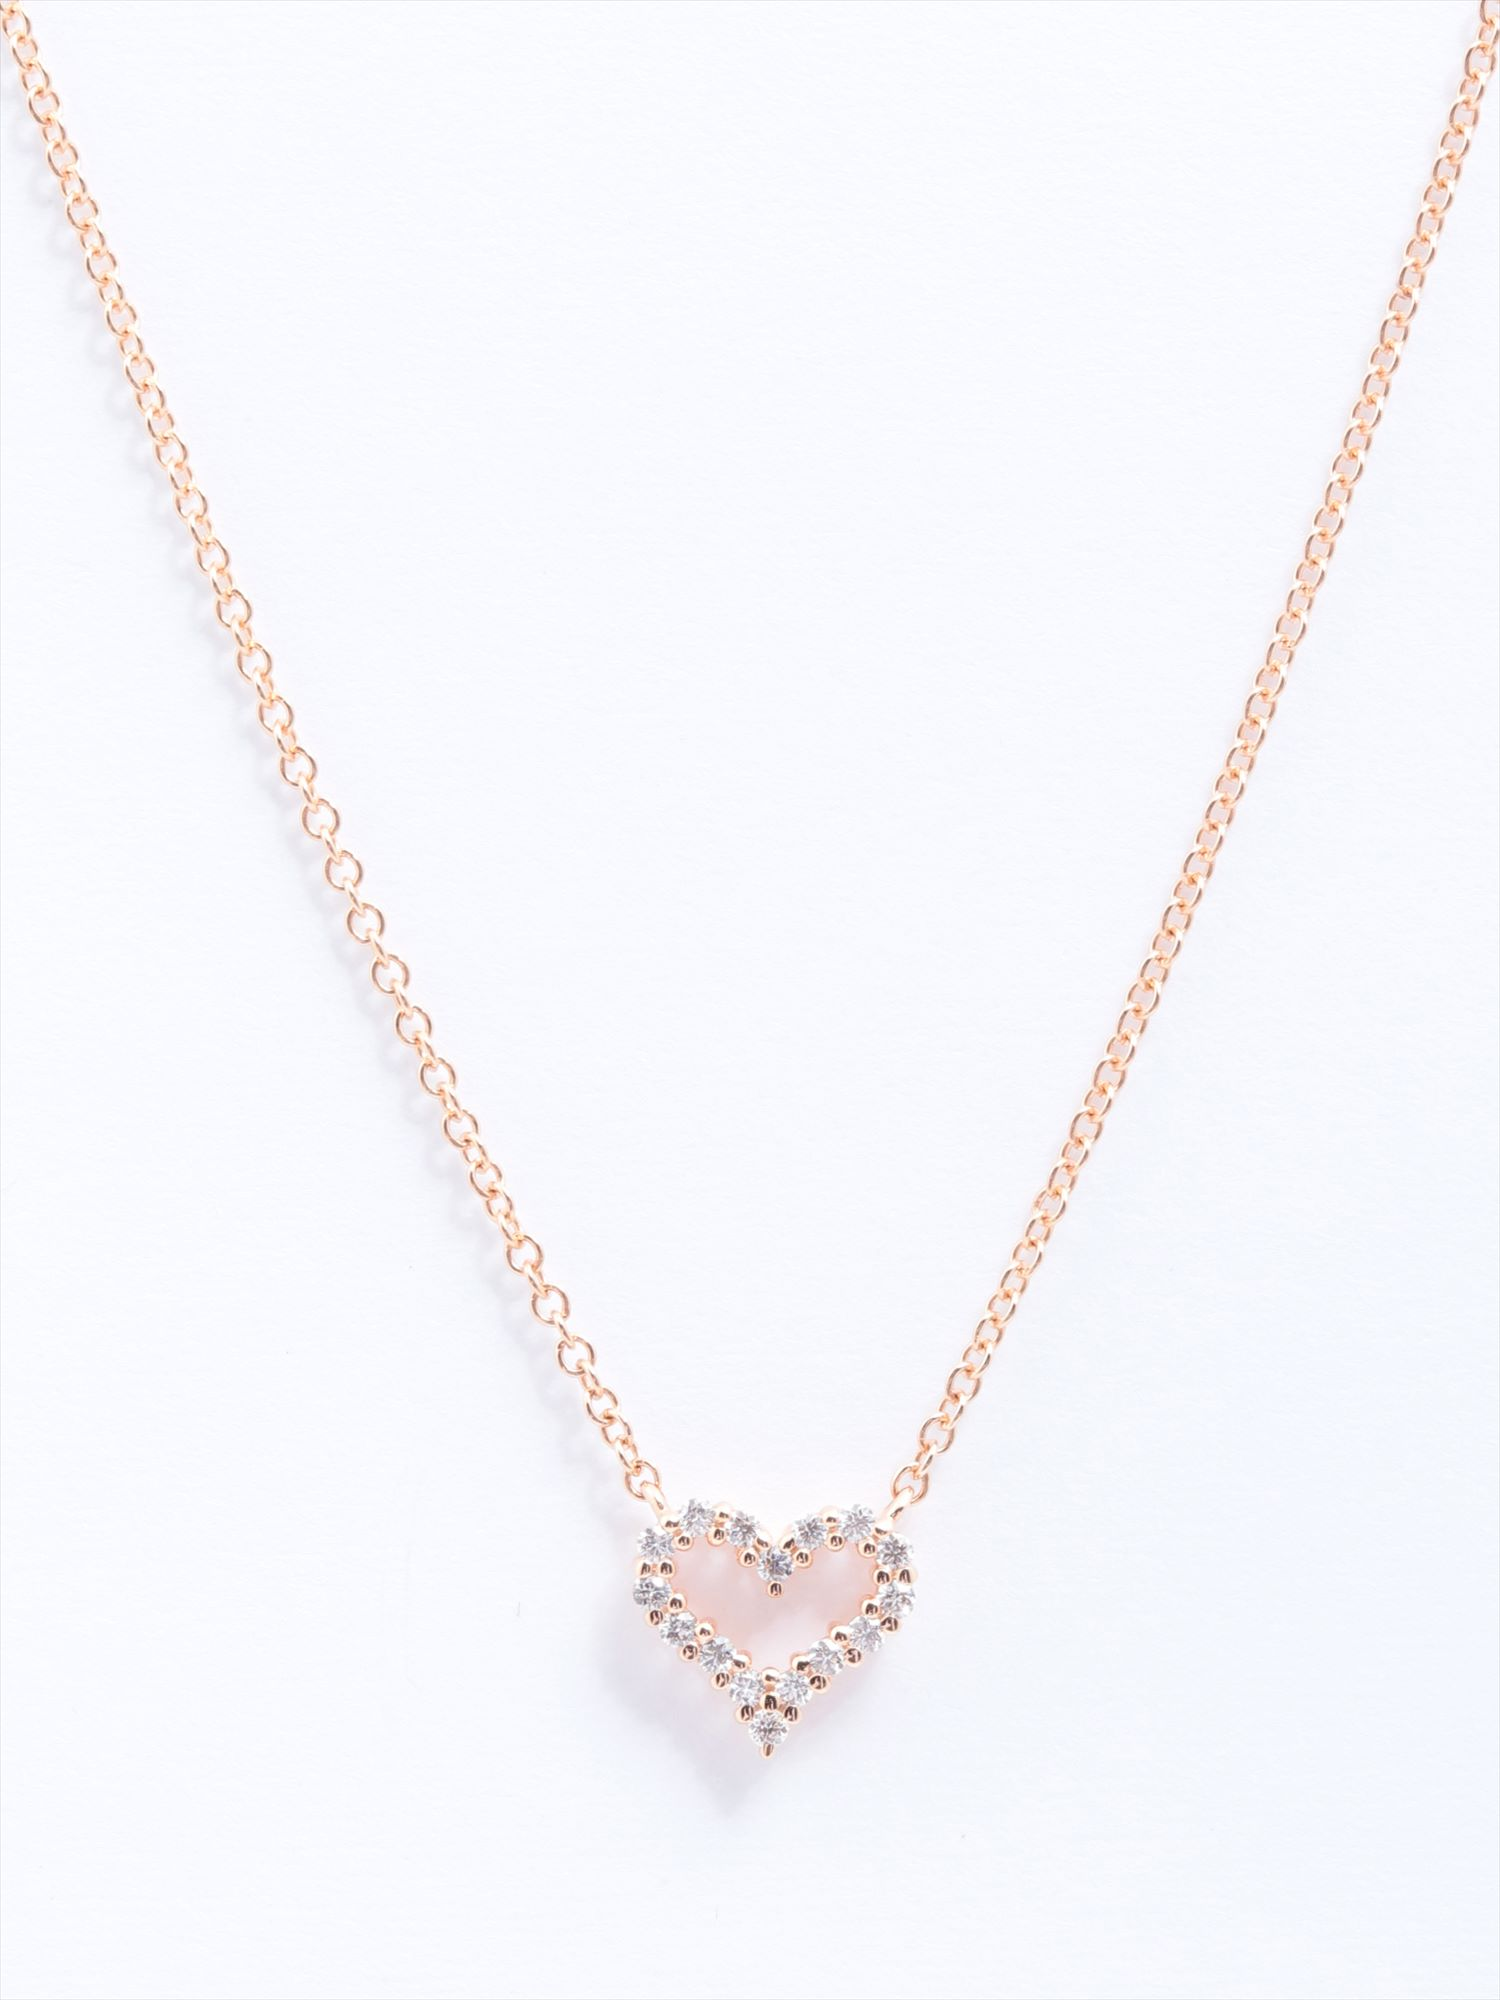 [Used article] Tiffany sentimental heart diamond necklace 750 1.8g pink gold